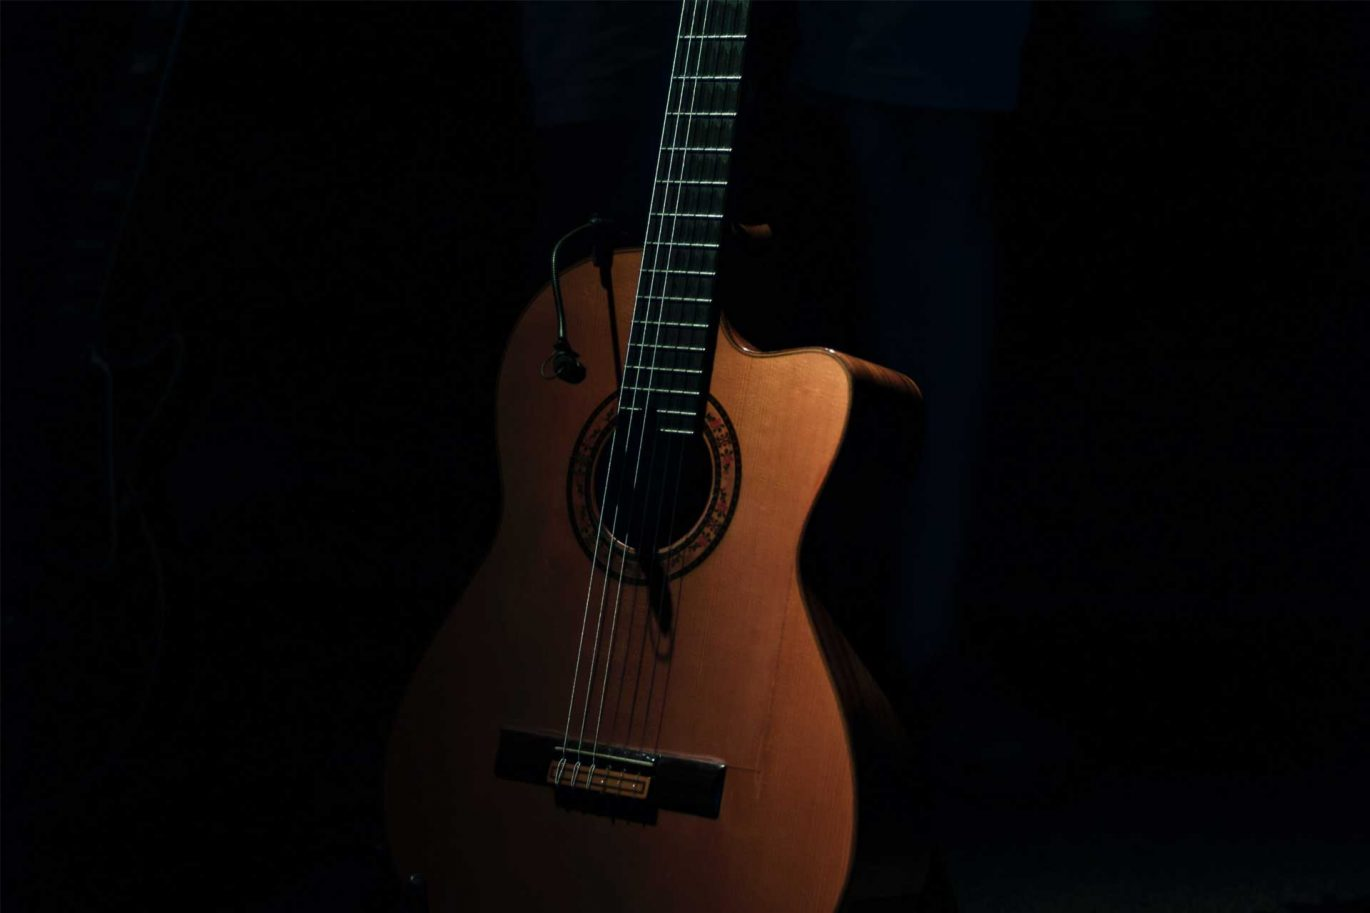 Nylon guitar strings - must know facts